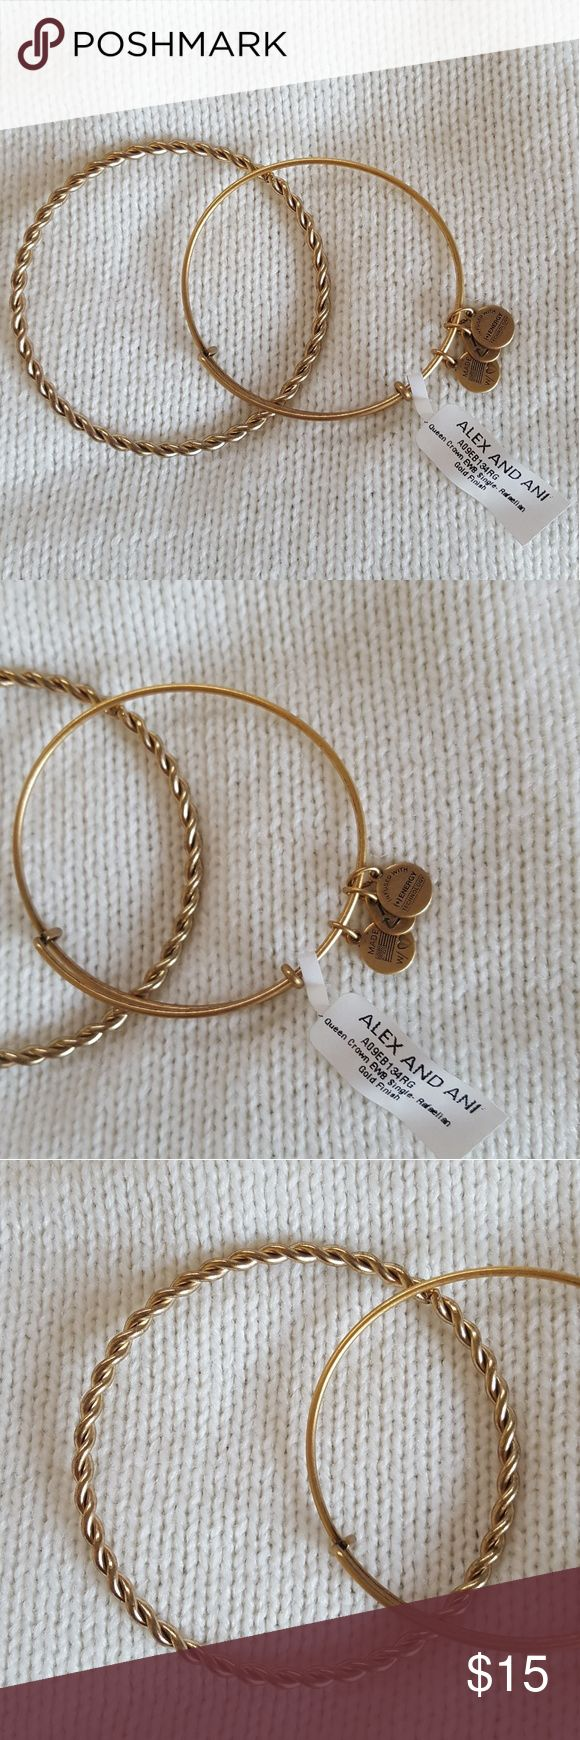 Alex & Ani Bangle 2 Bangles  -1 Alex and Ani Gold toned Bangle *missing charm* - 1 Gold toned Braided Bangle *not 100% sure this is Alex & Ani* Condition : Used but in great condition Alex & Ani Jewelry Bracelets